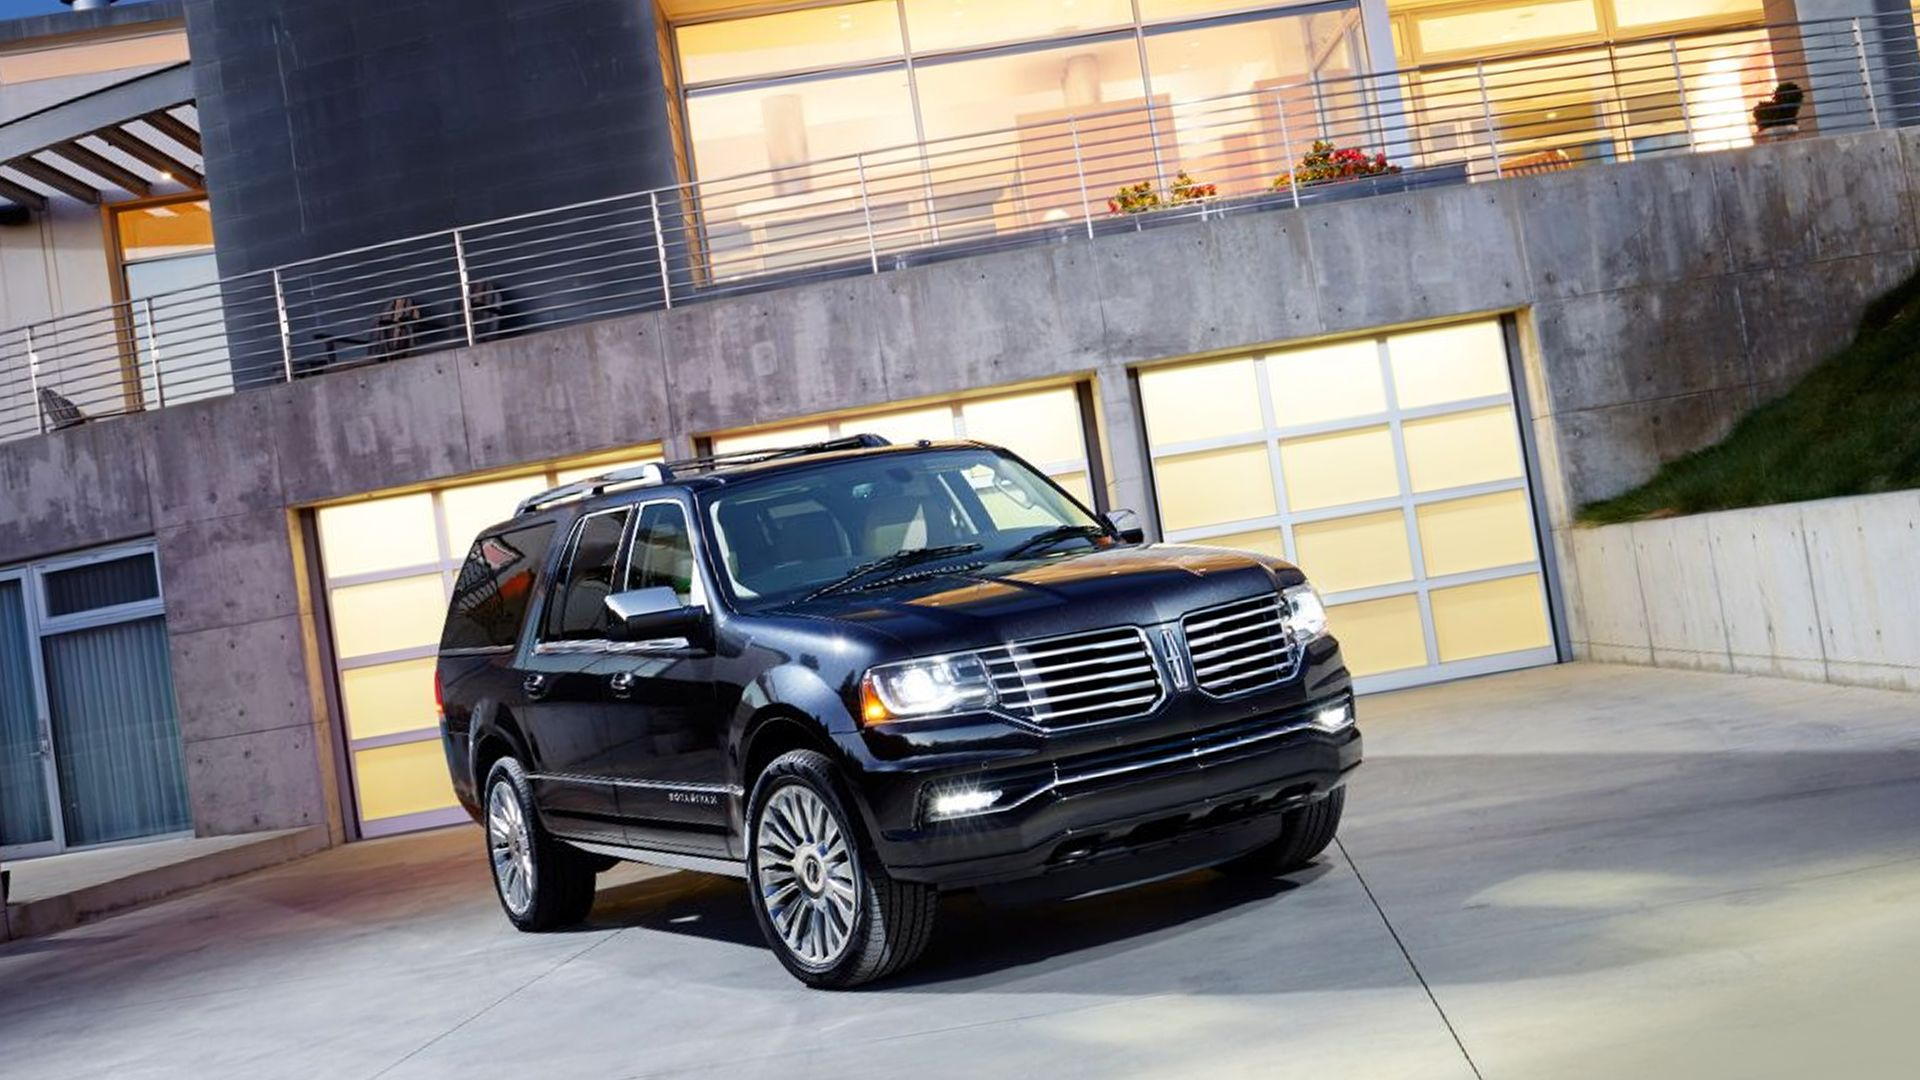 New 2018 Lincoln Navigator Price